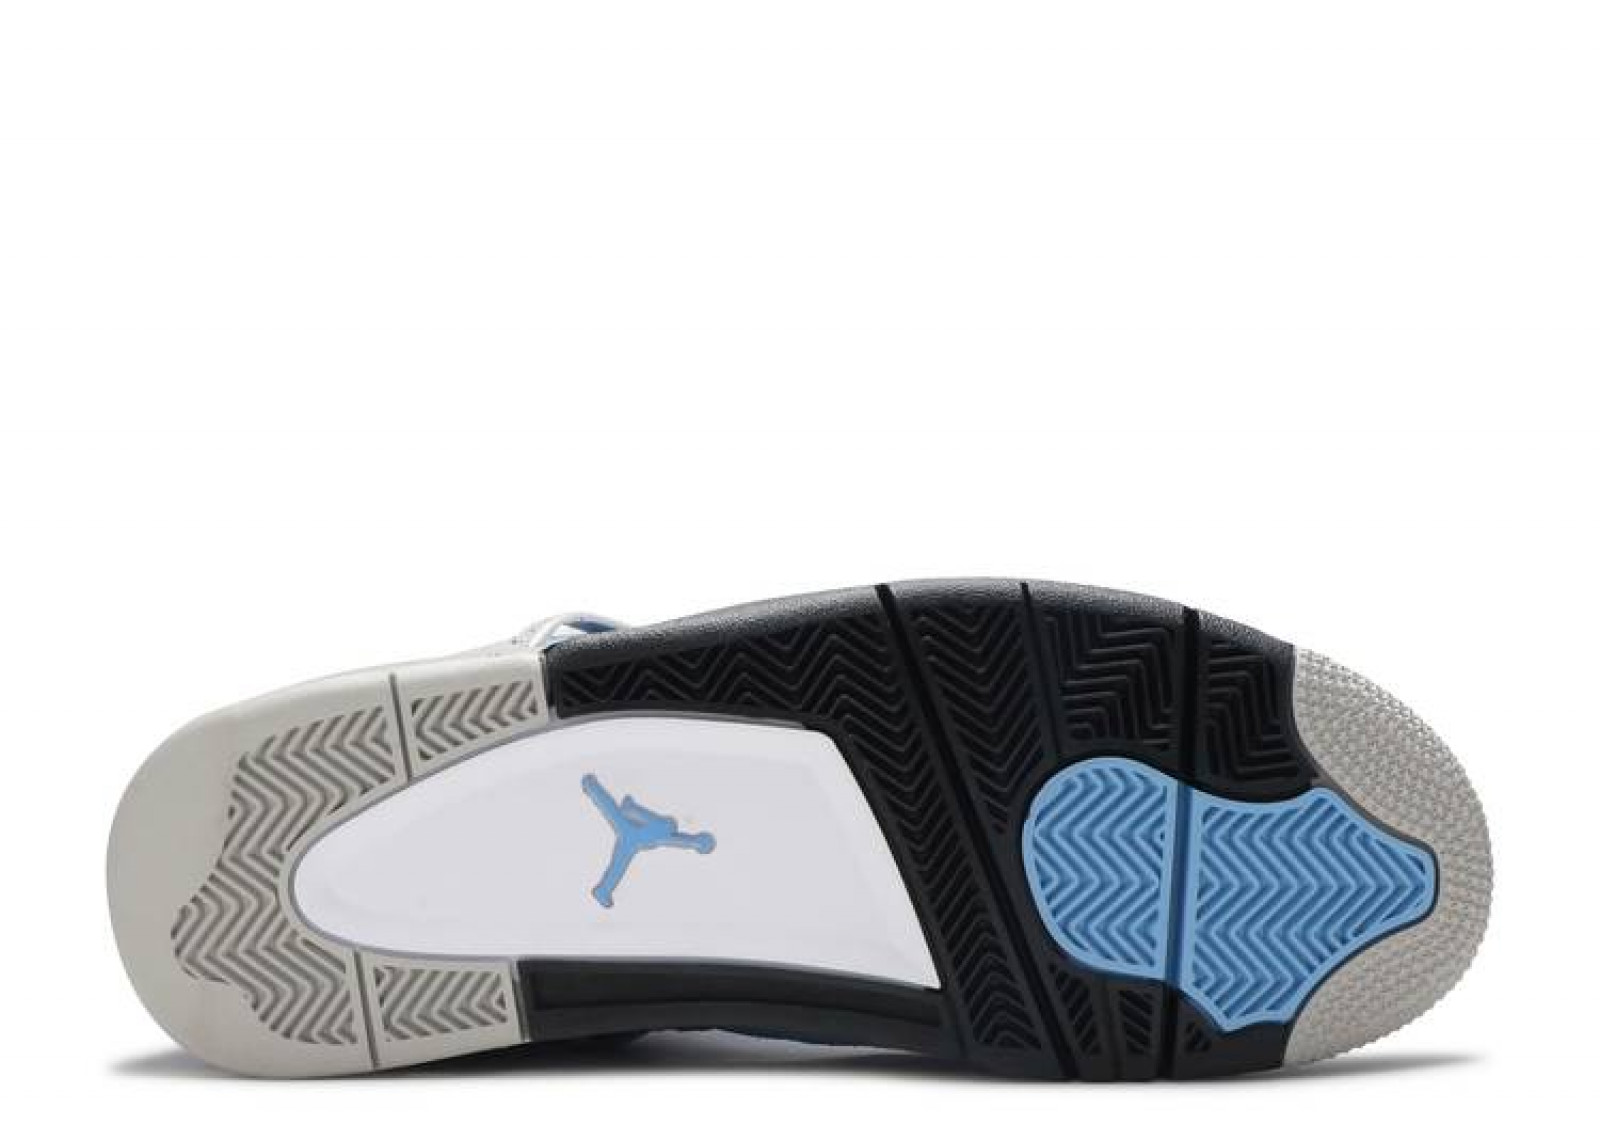 AIR JORDAN 4 RETRO UNIVERSITY BLUE image 4